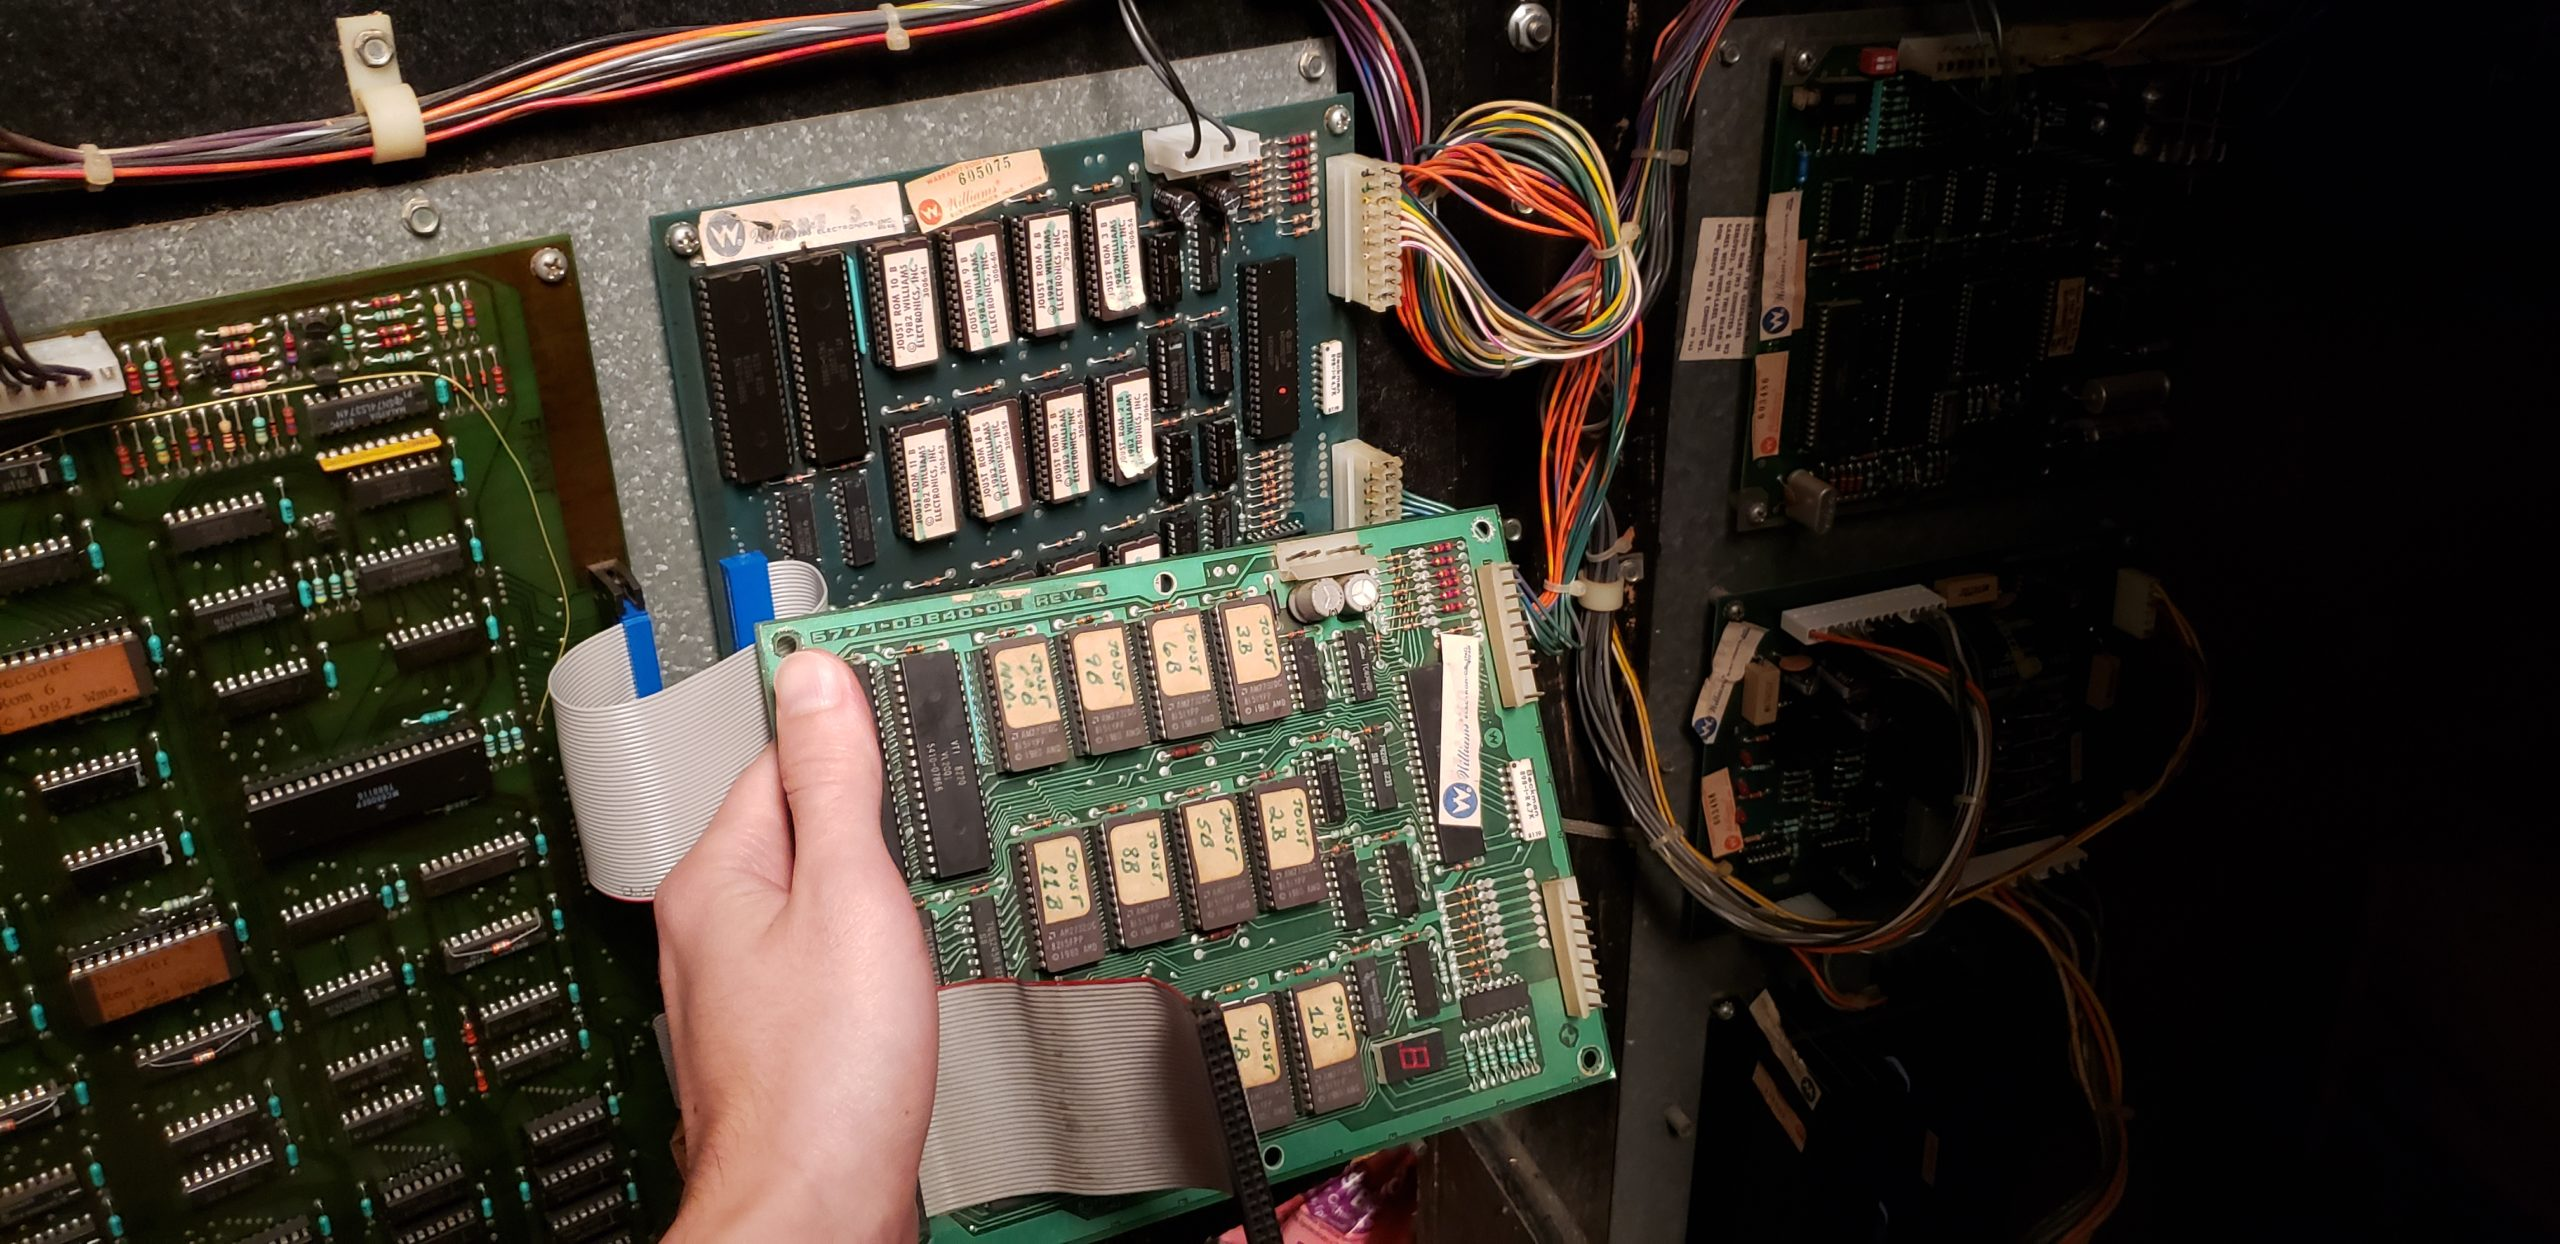 holding replacement ROM board in front of old ROM board